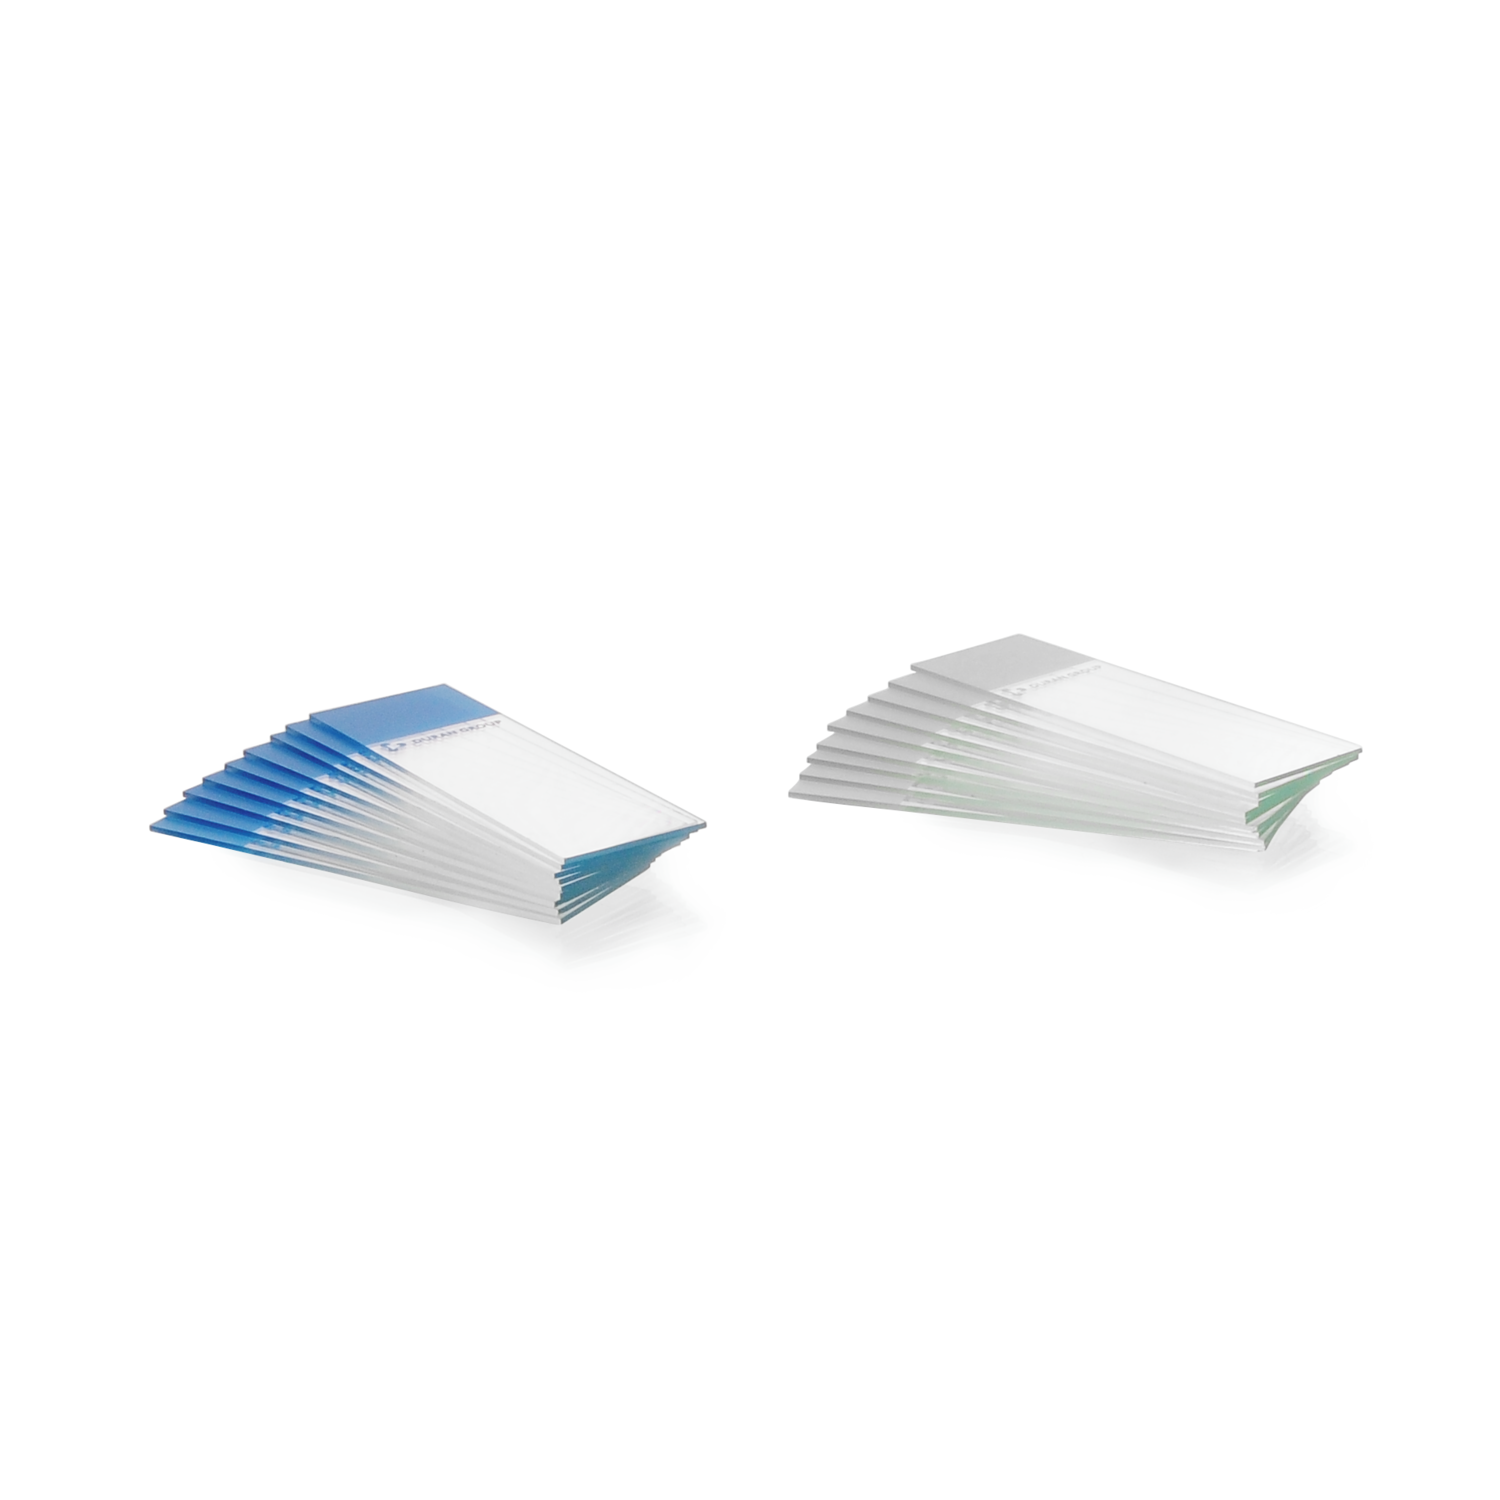 Microscope Slides from Soda-lime Glass, ground edges 90°, white adhesive ++